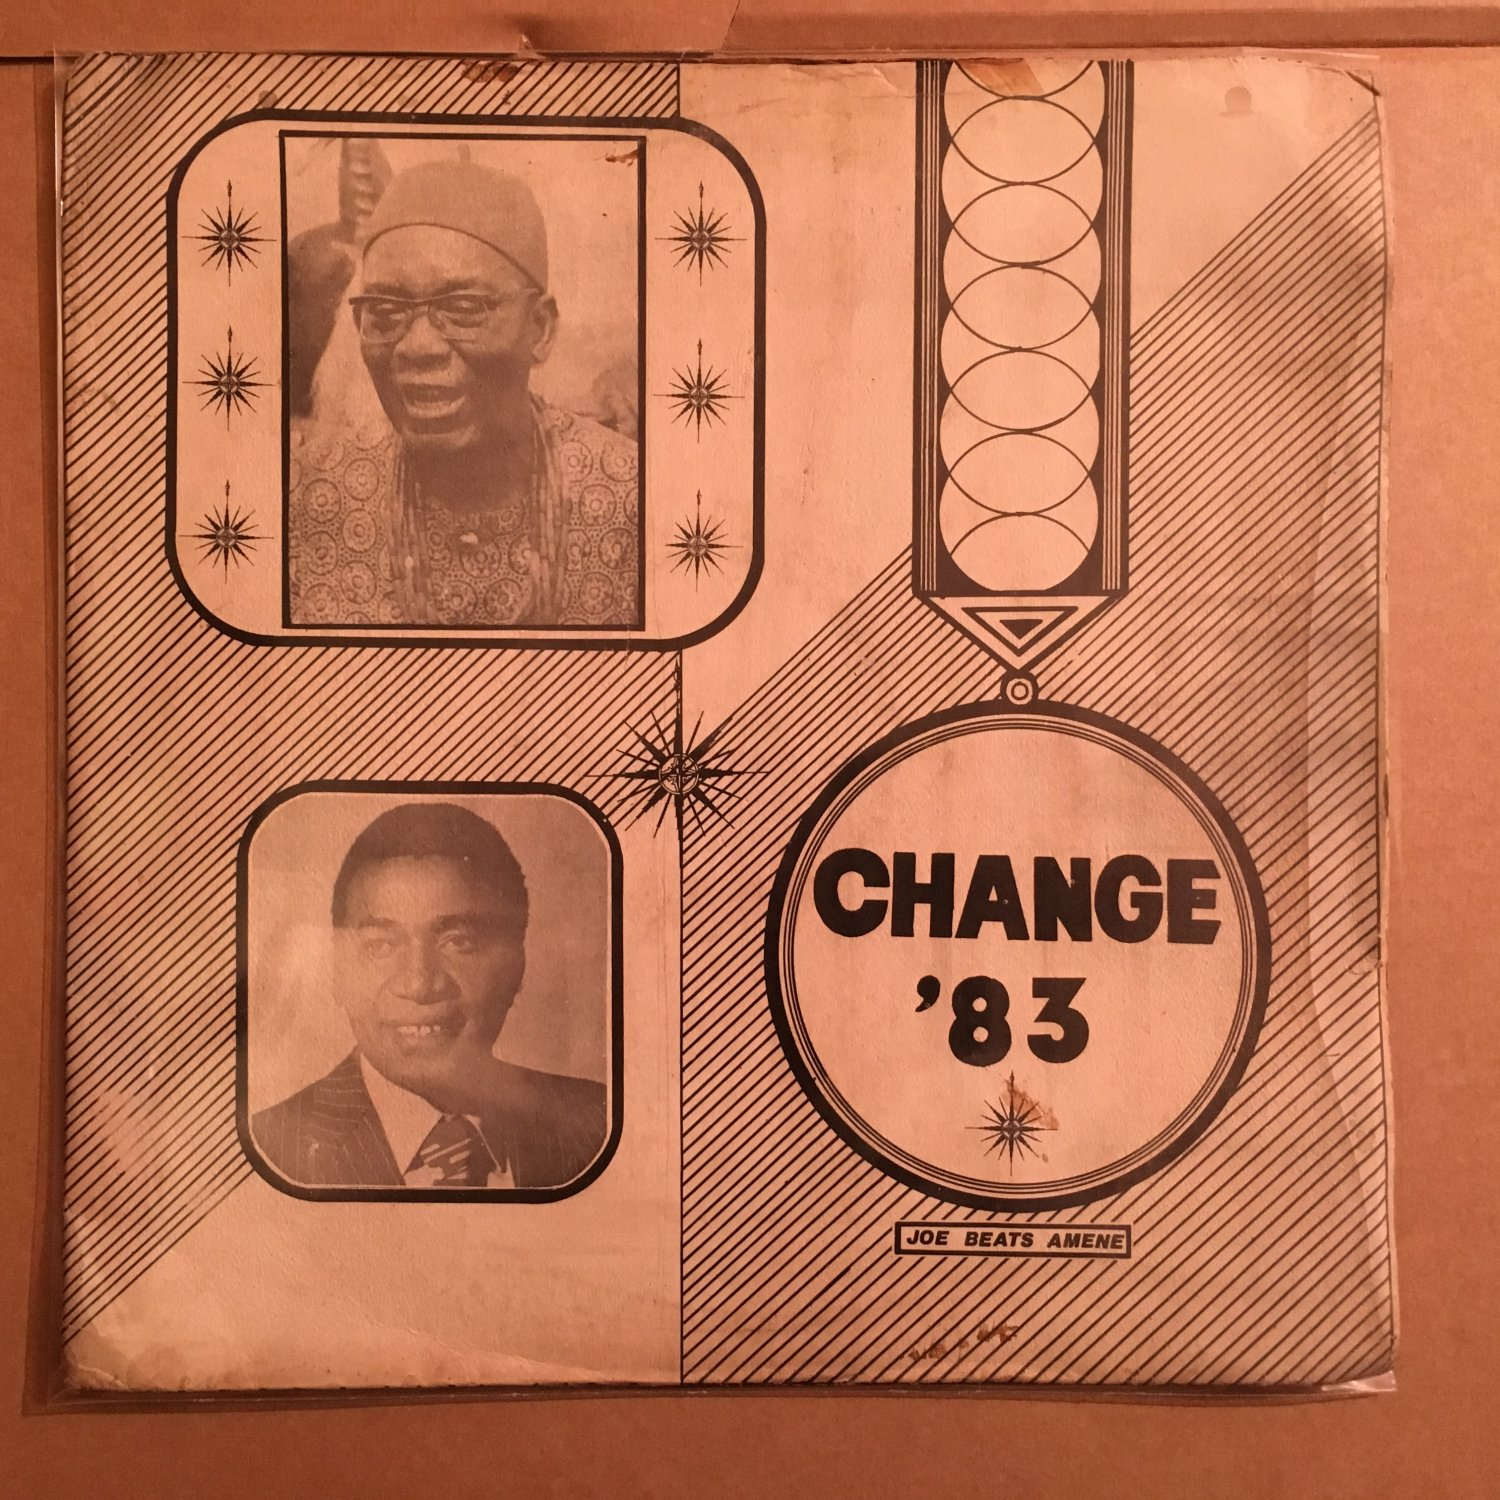 JOE BEATS AMENE LP change 83 NIGERIA OBSCURE FUNKY mp3 LISTEN